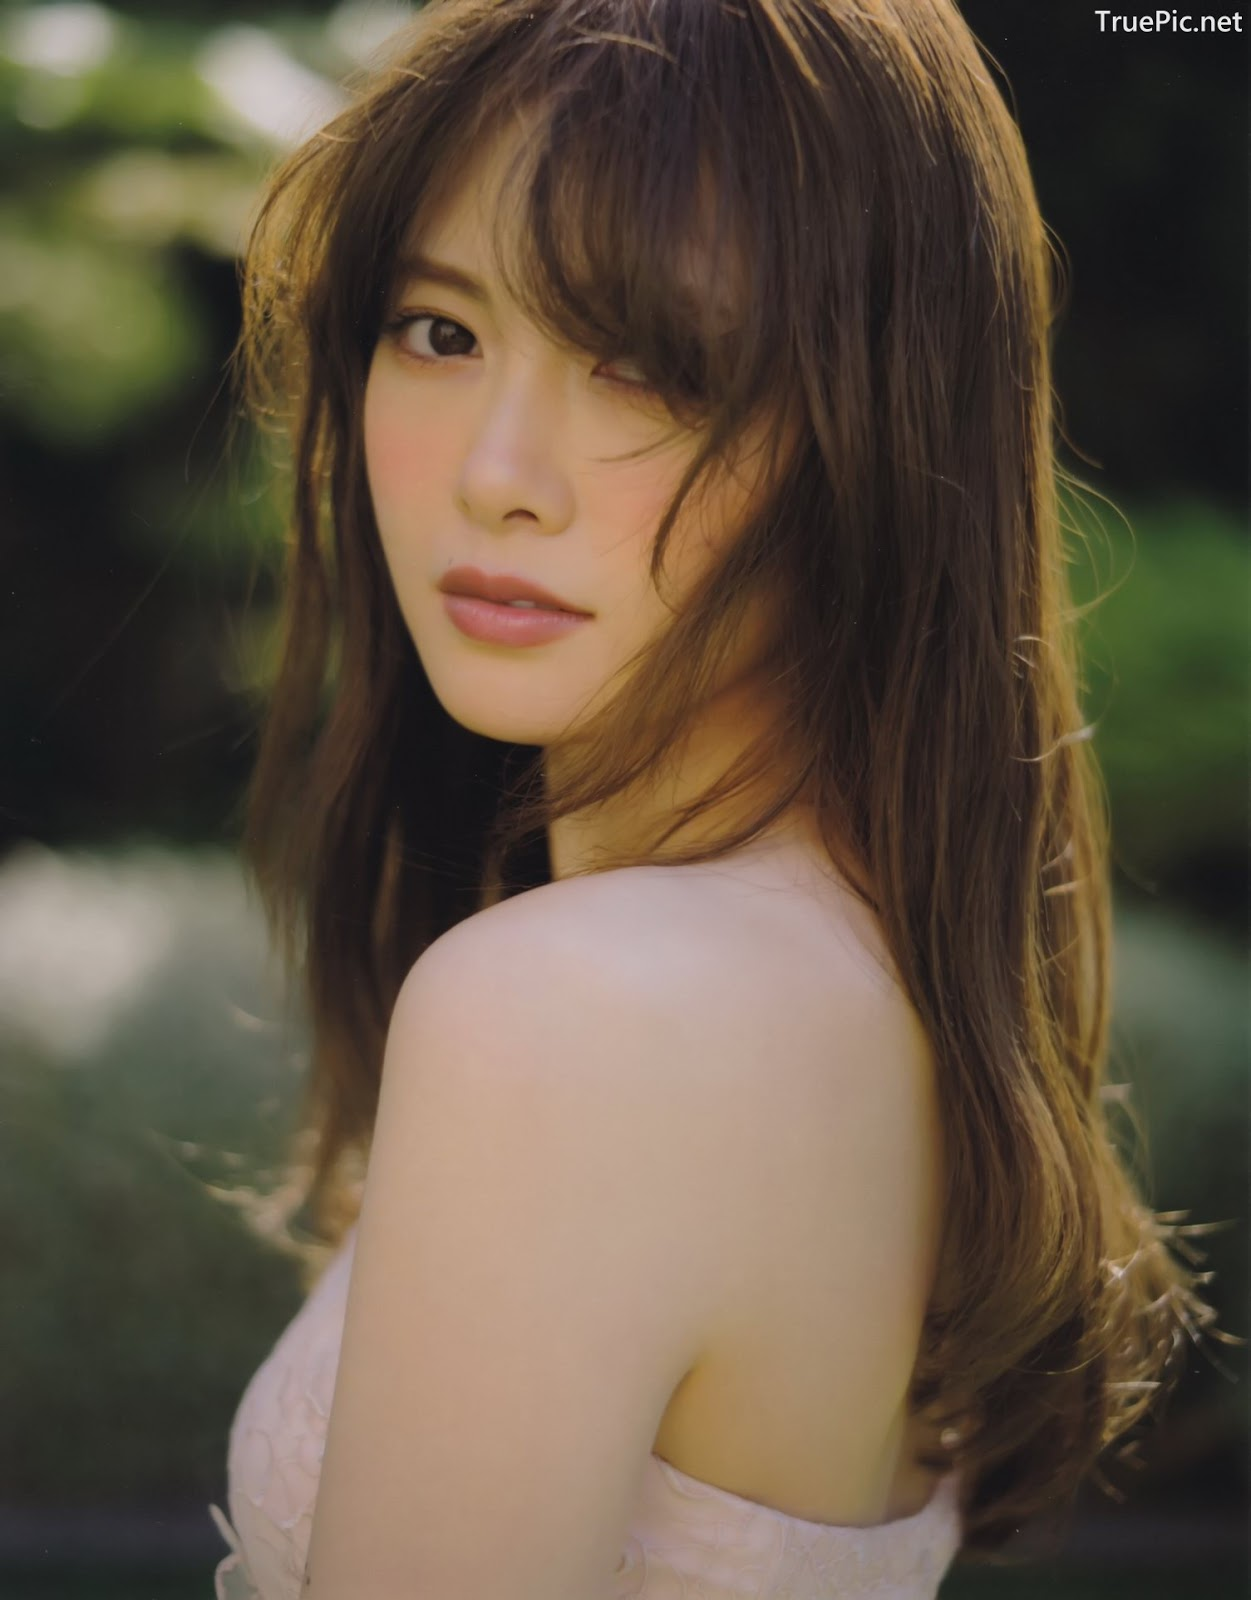 Image Japanese Singer And Model - Mai Shiraishi - Charming Beauty Of Angel - TruePic.net - Picture-9